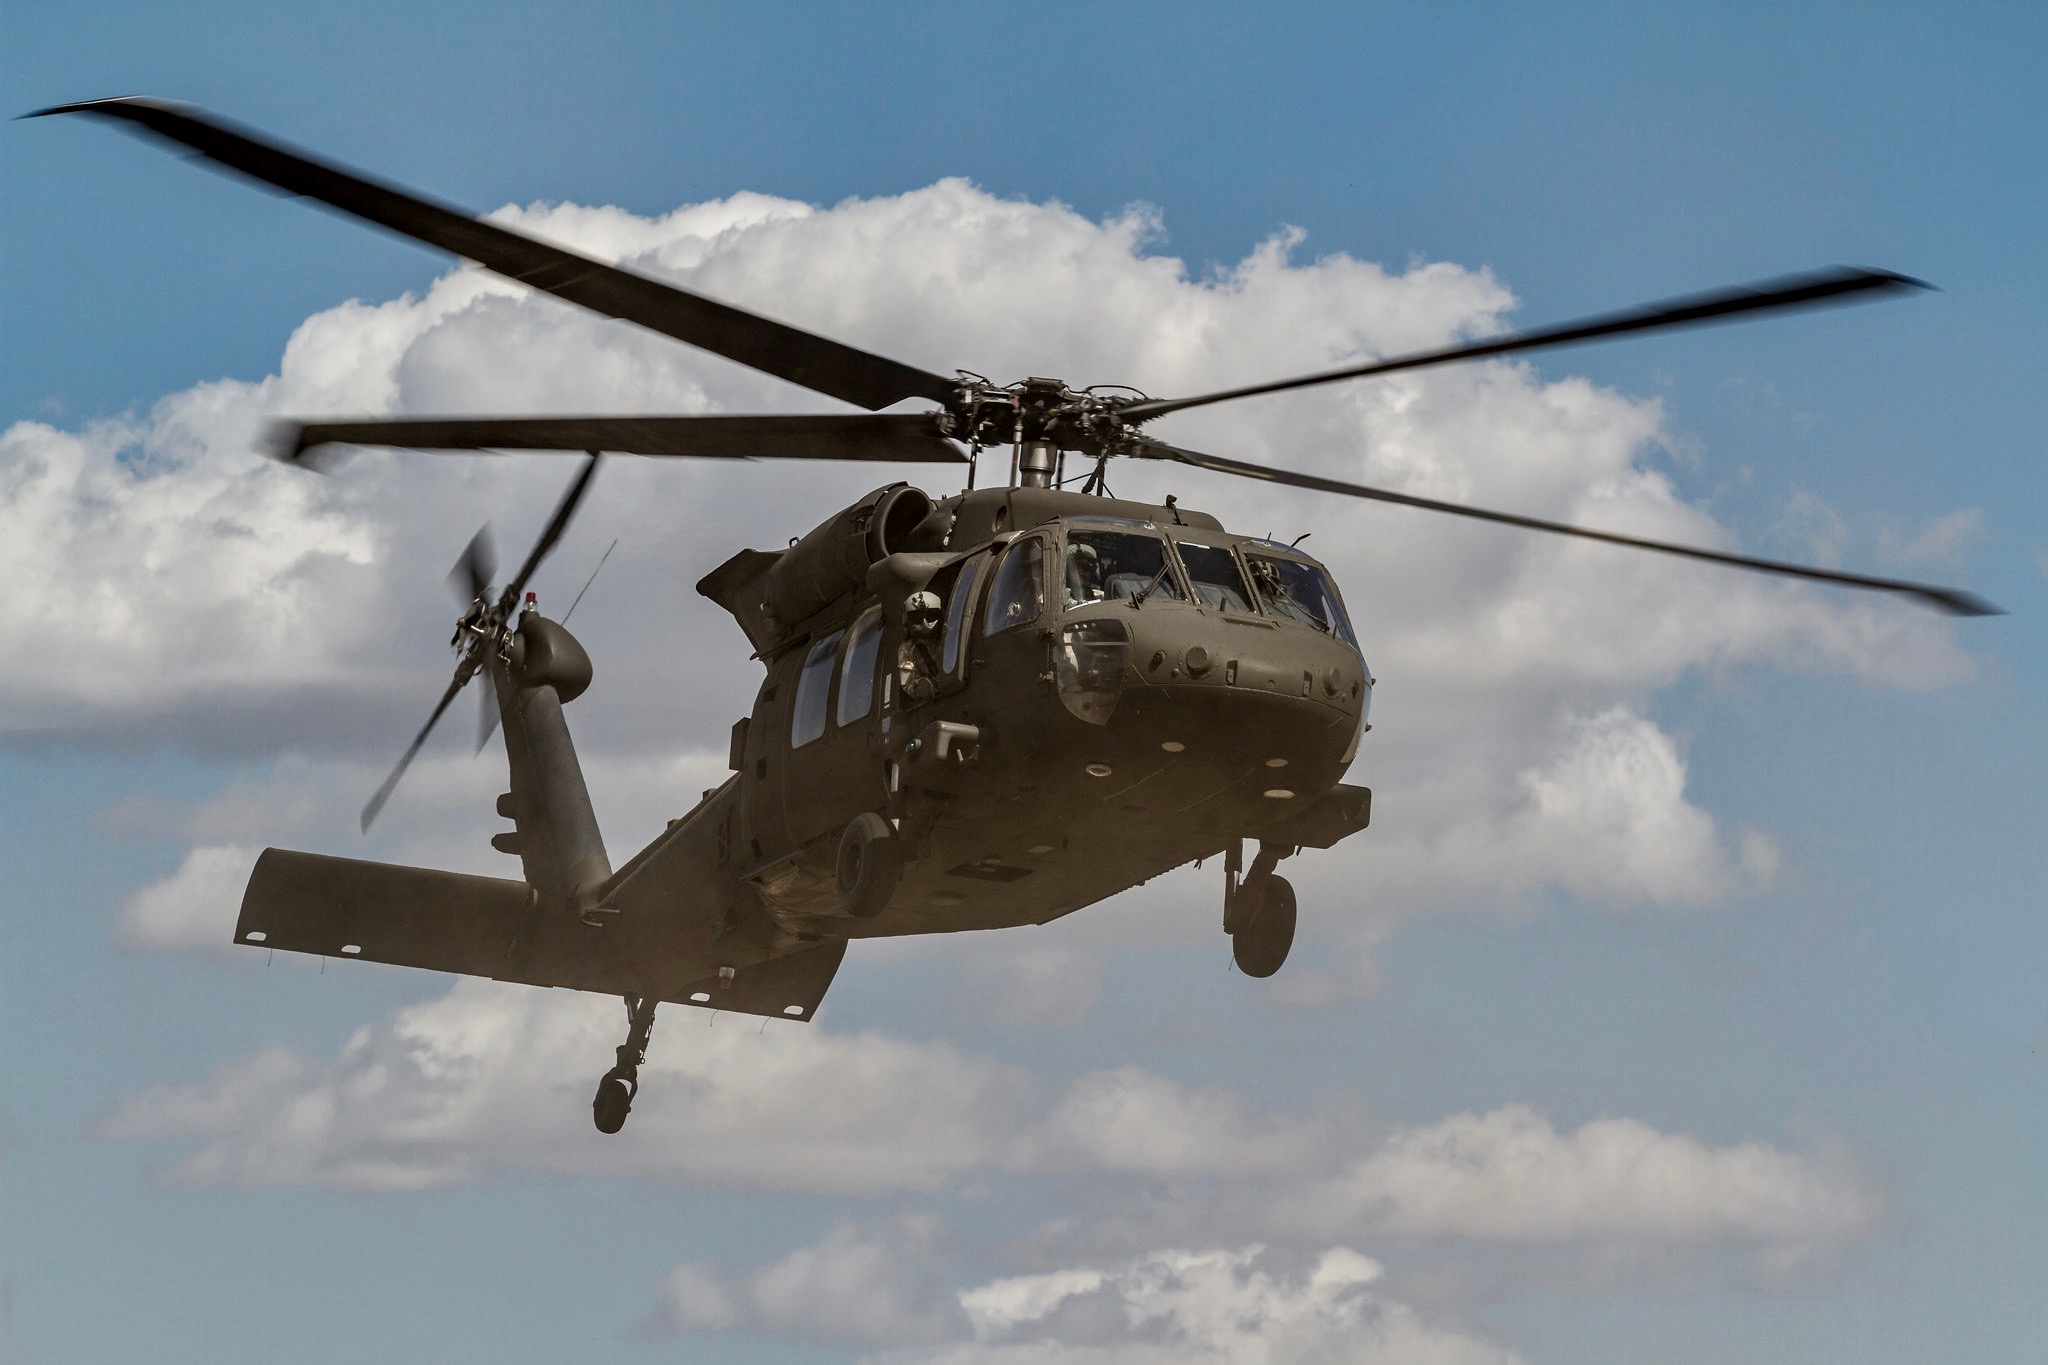 black hawk helicopter with Army Confirms Black Hawk Drone Collided Over New York City on S70 also Movie Review Black Hawk Down 2001 besides 12 Reasons Paratroopers Better besides Bell V 280 Flight C aign Advances besides Sikorsky S 70 SP YVA lockheed 247591 large.